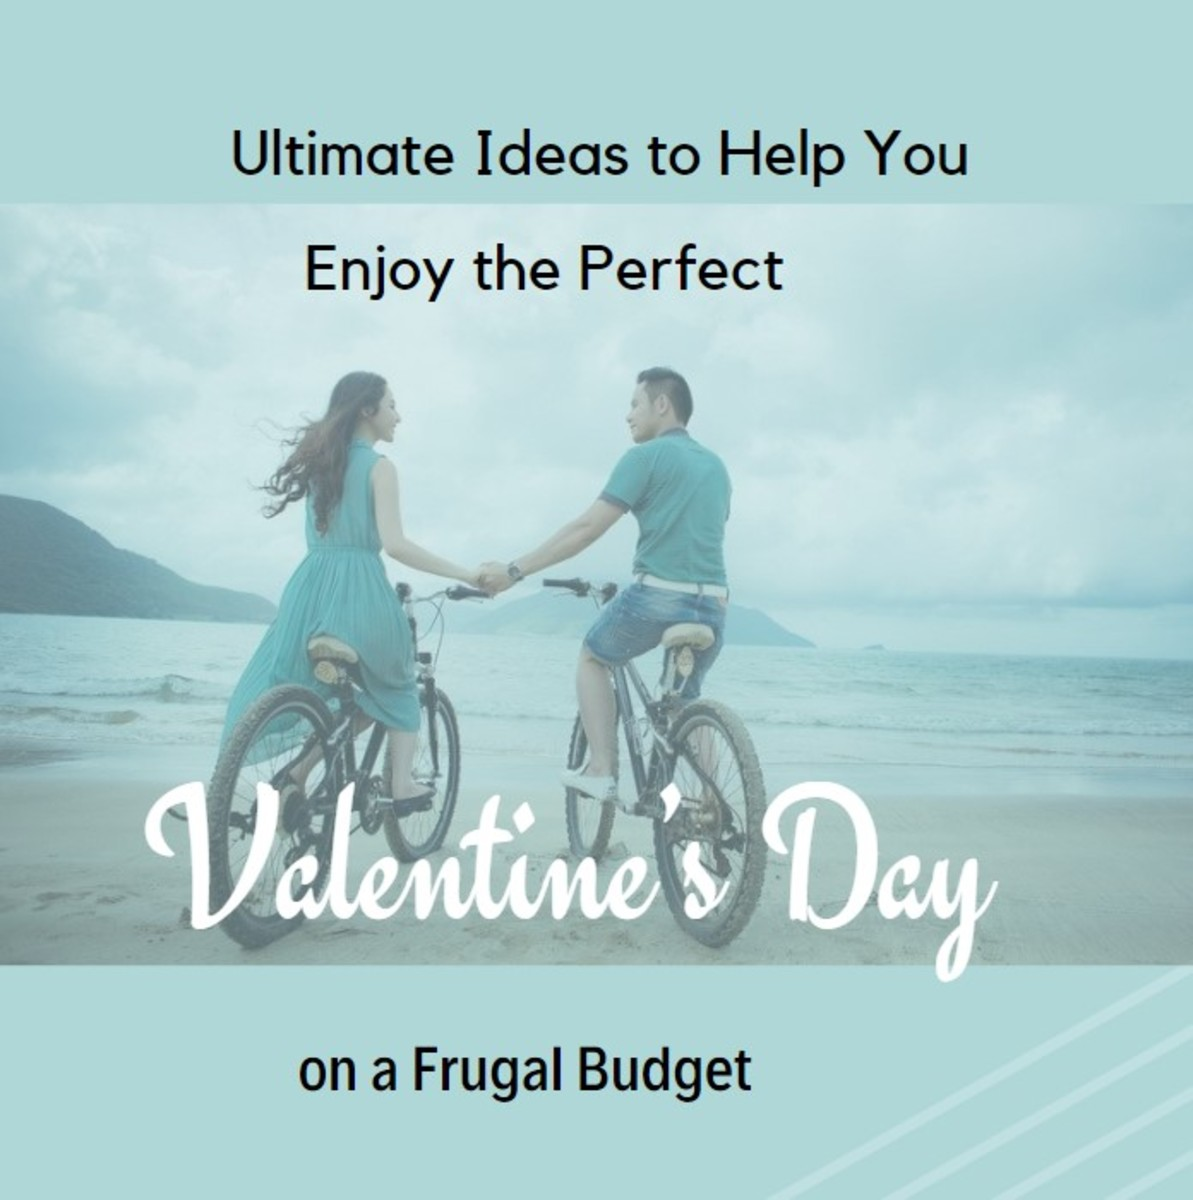 5 Secret Easy and Frisky Budget-Friendly Ideas for a Valentine's Day That Will Wow